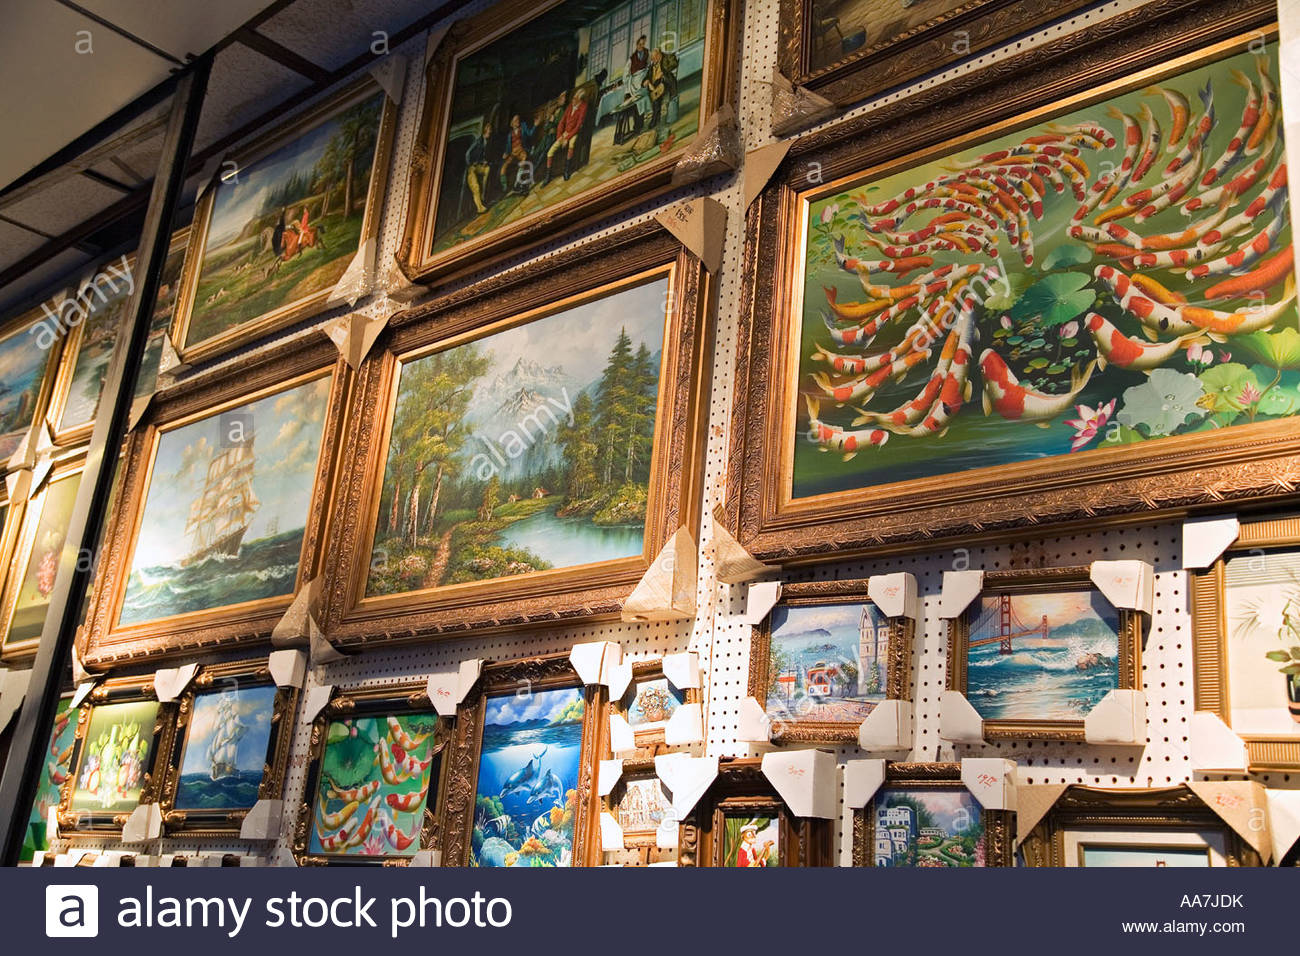 Framed Paintings Stock Photos & Framed Paintings Stock Images - Alamy